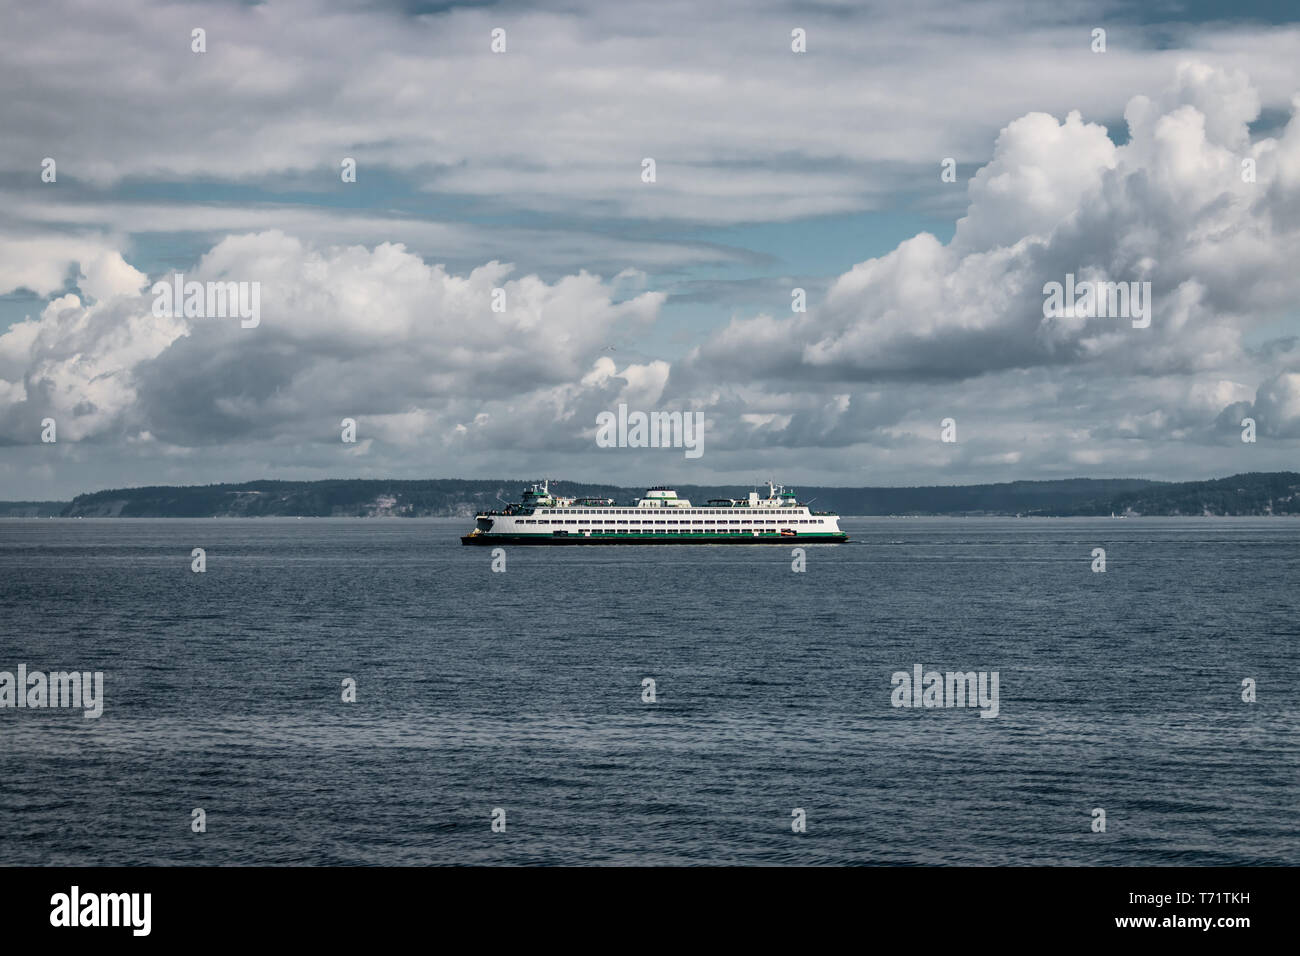 The ferry Walla Walla makes its way on a cloudy summer day from Bainbridge Island to Seattle in the Puget Sound, Washington state. Stock Photo